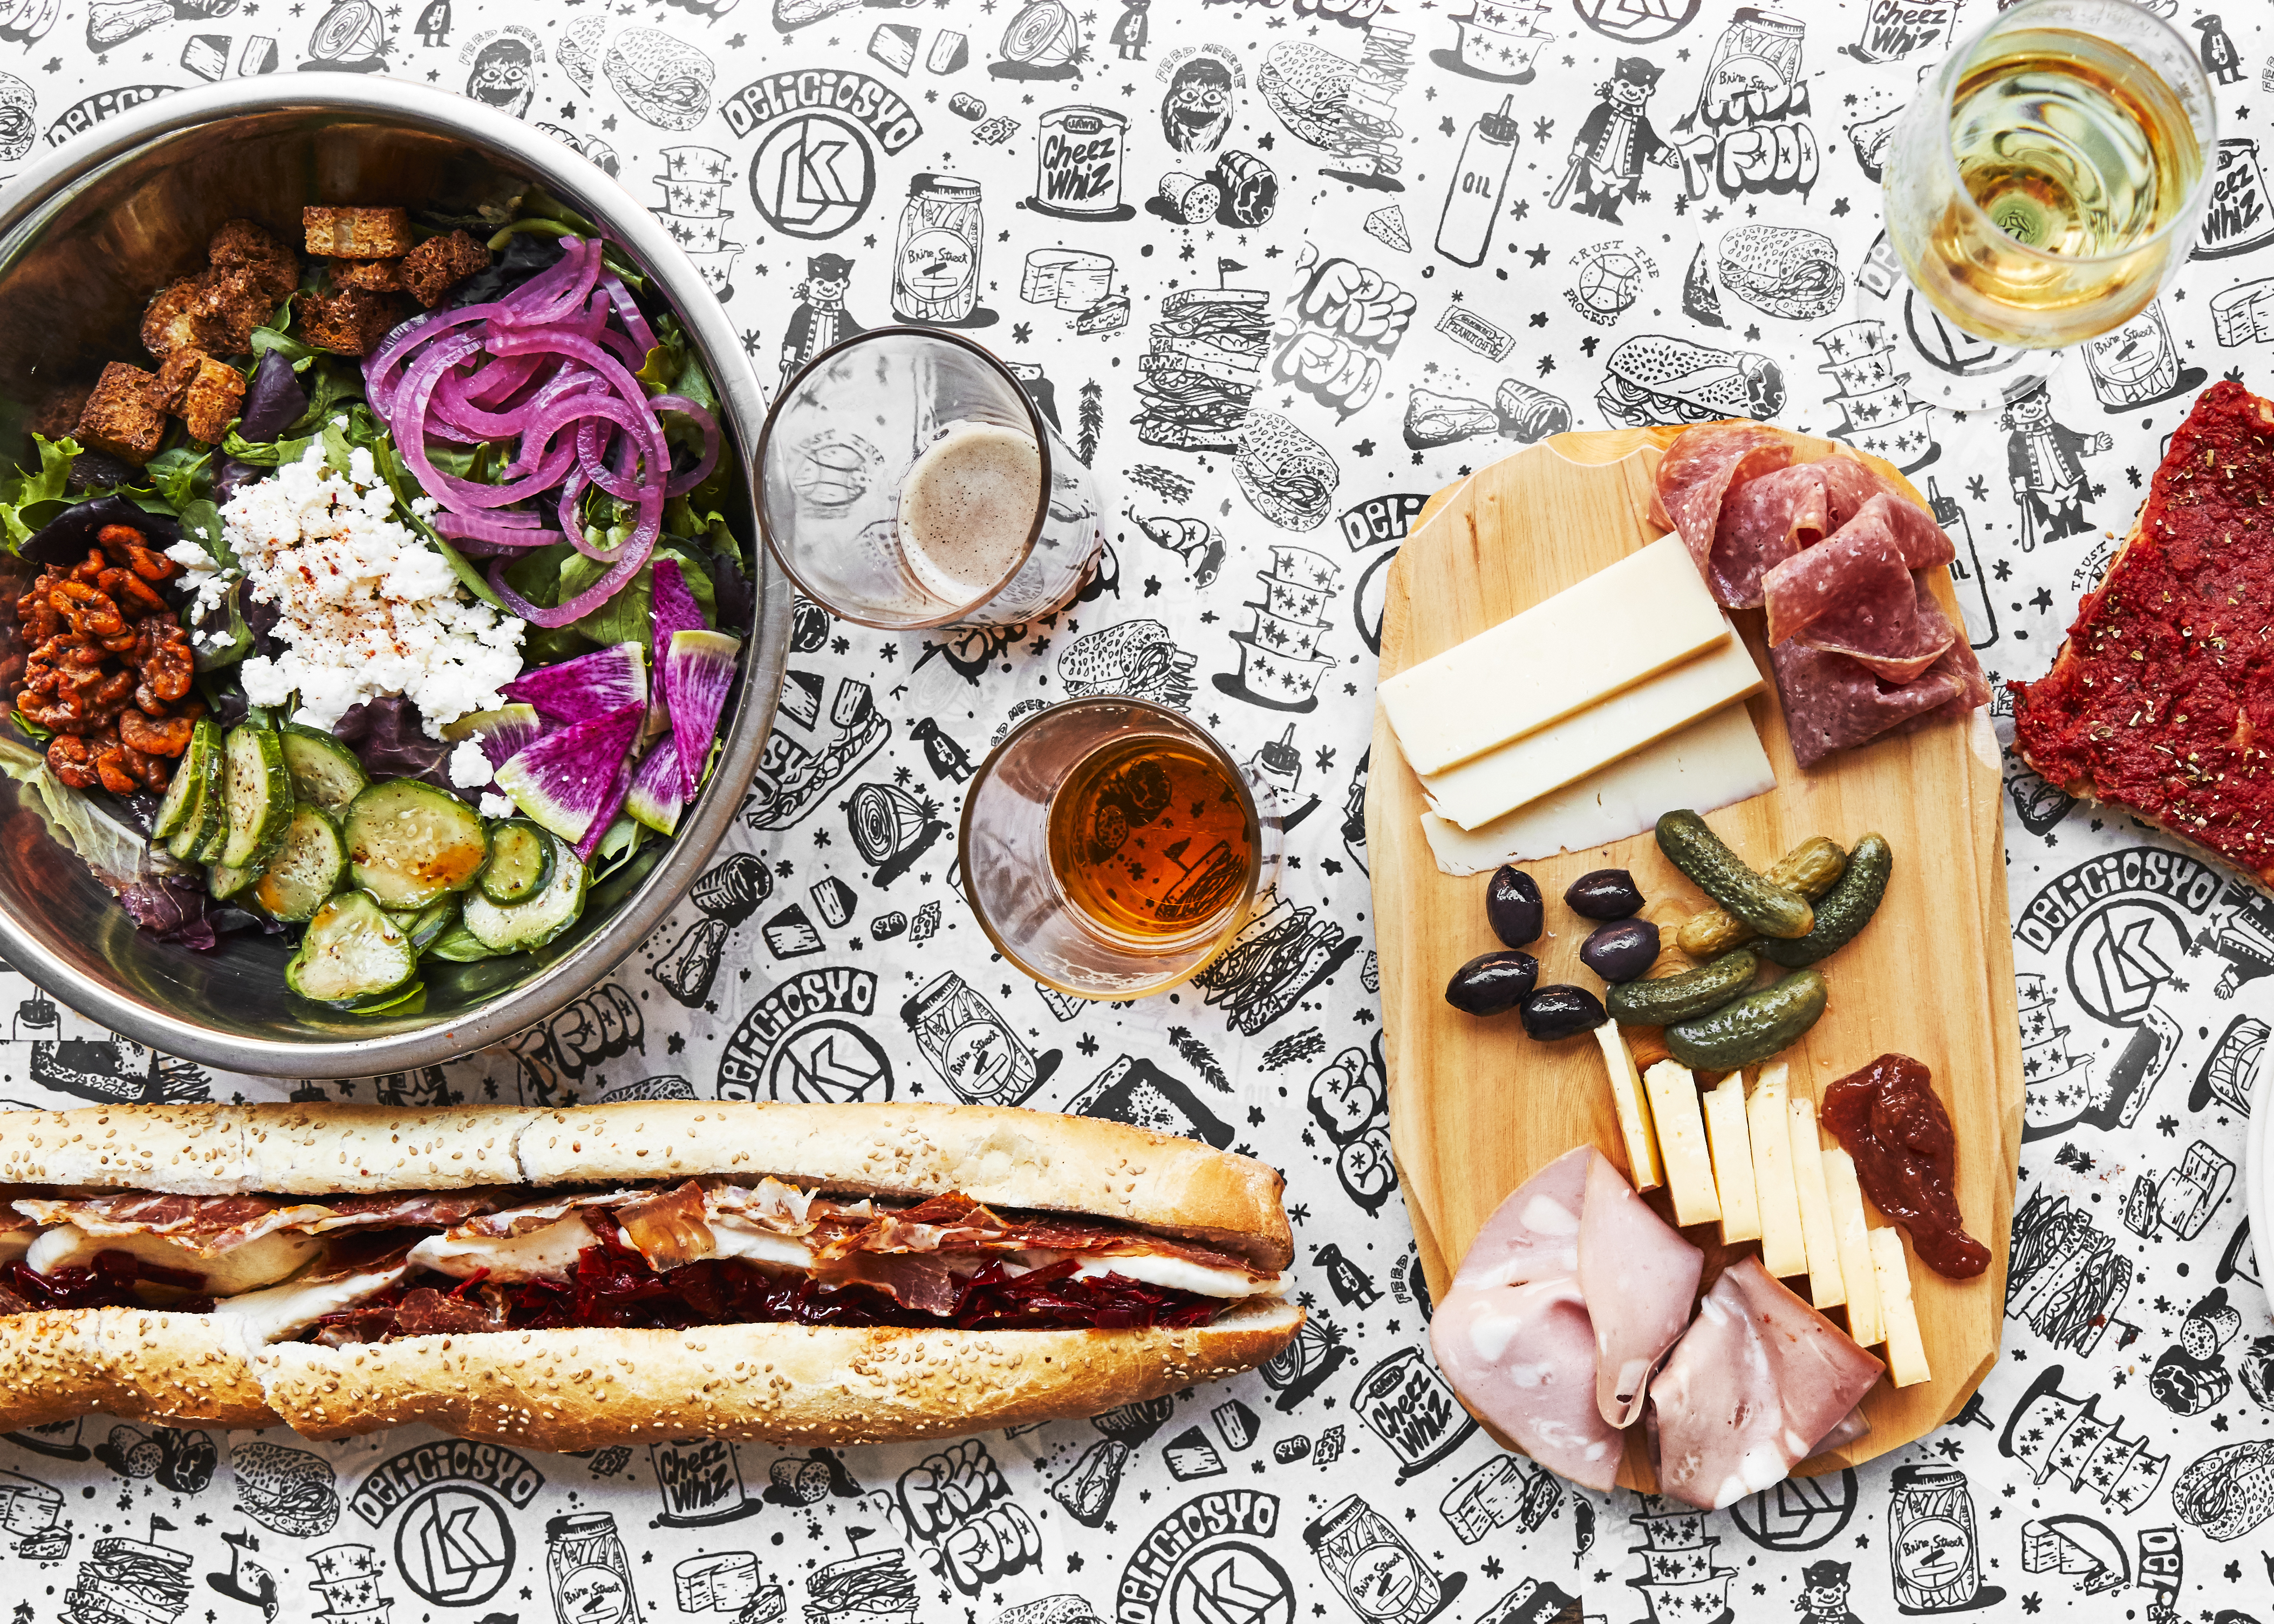 cheeseboard, salad, sandwich on long roll, and glasses of beer and wine on a black and white tablecloth decorated with food images